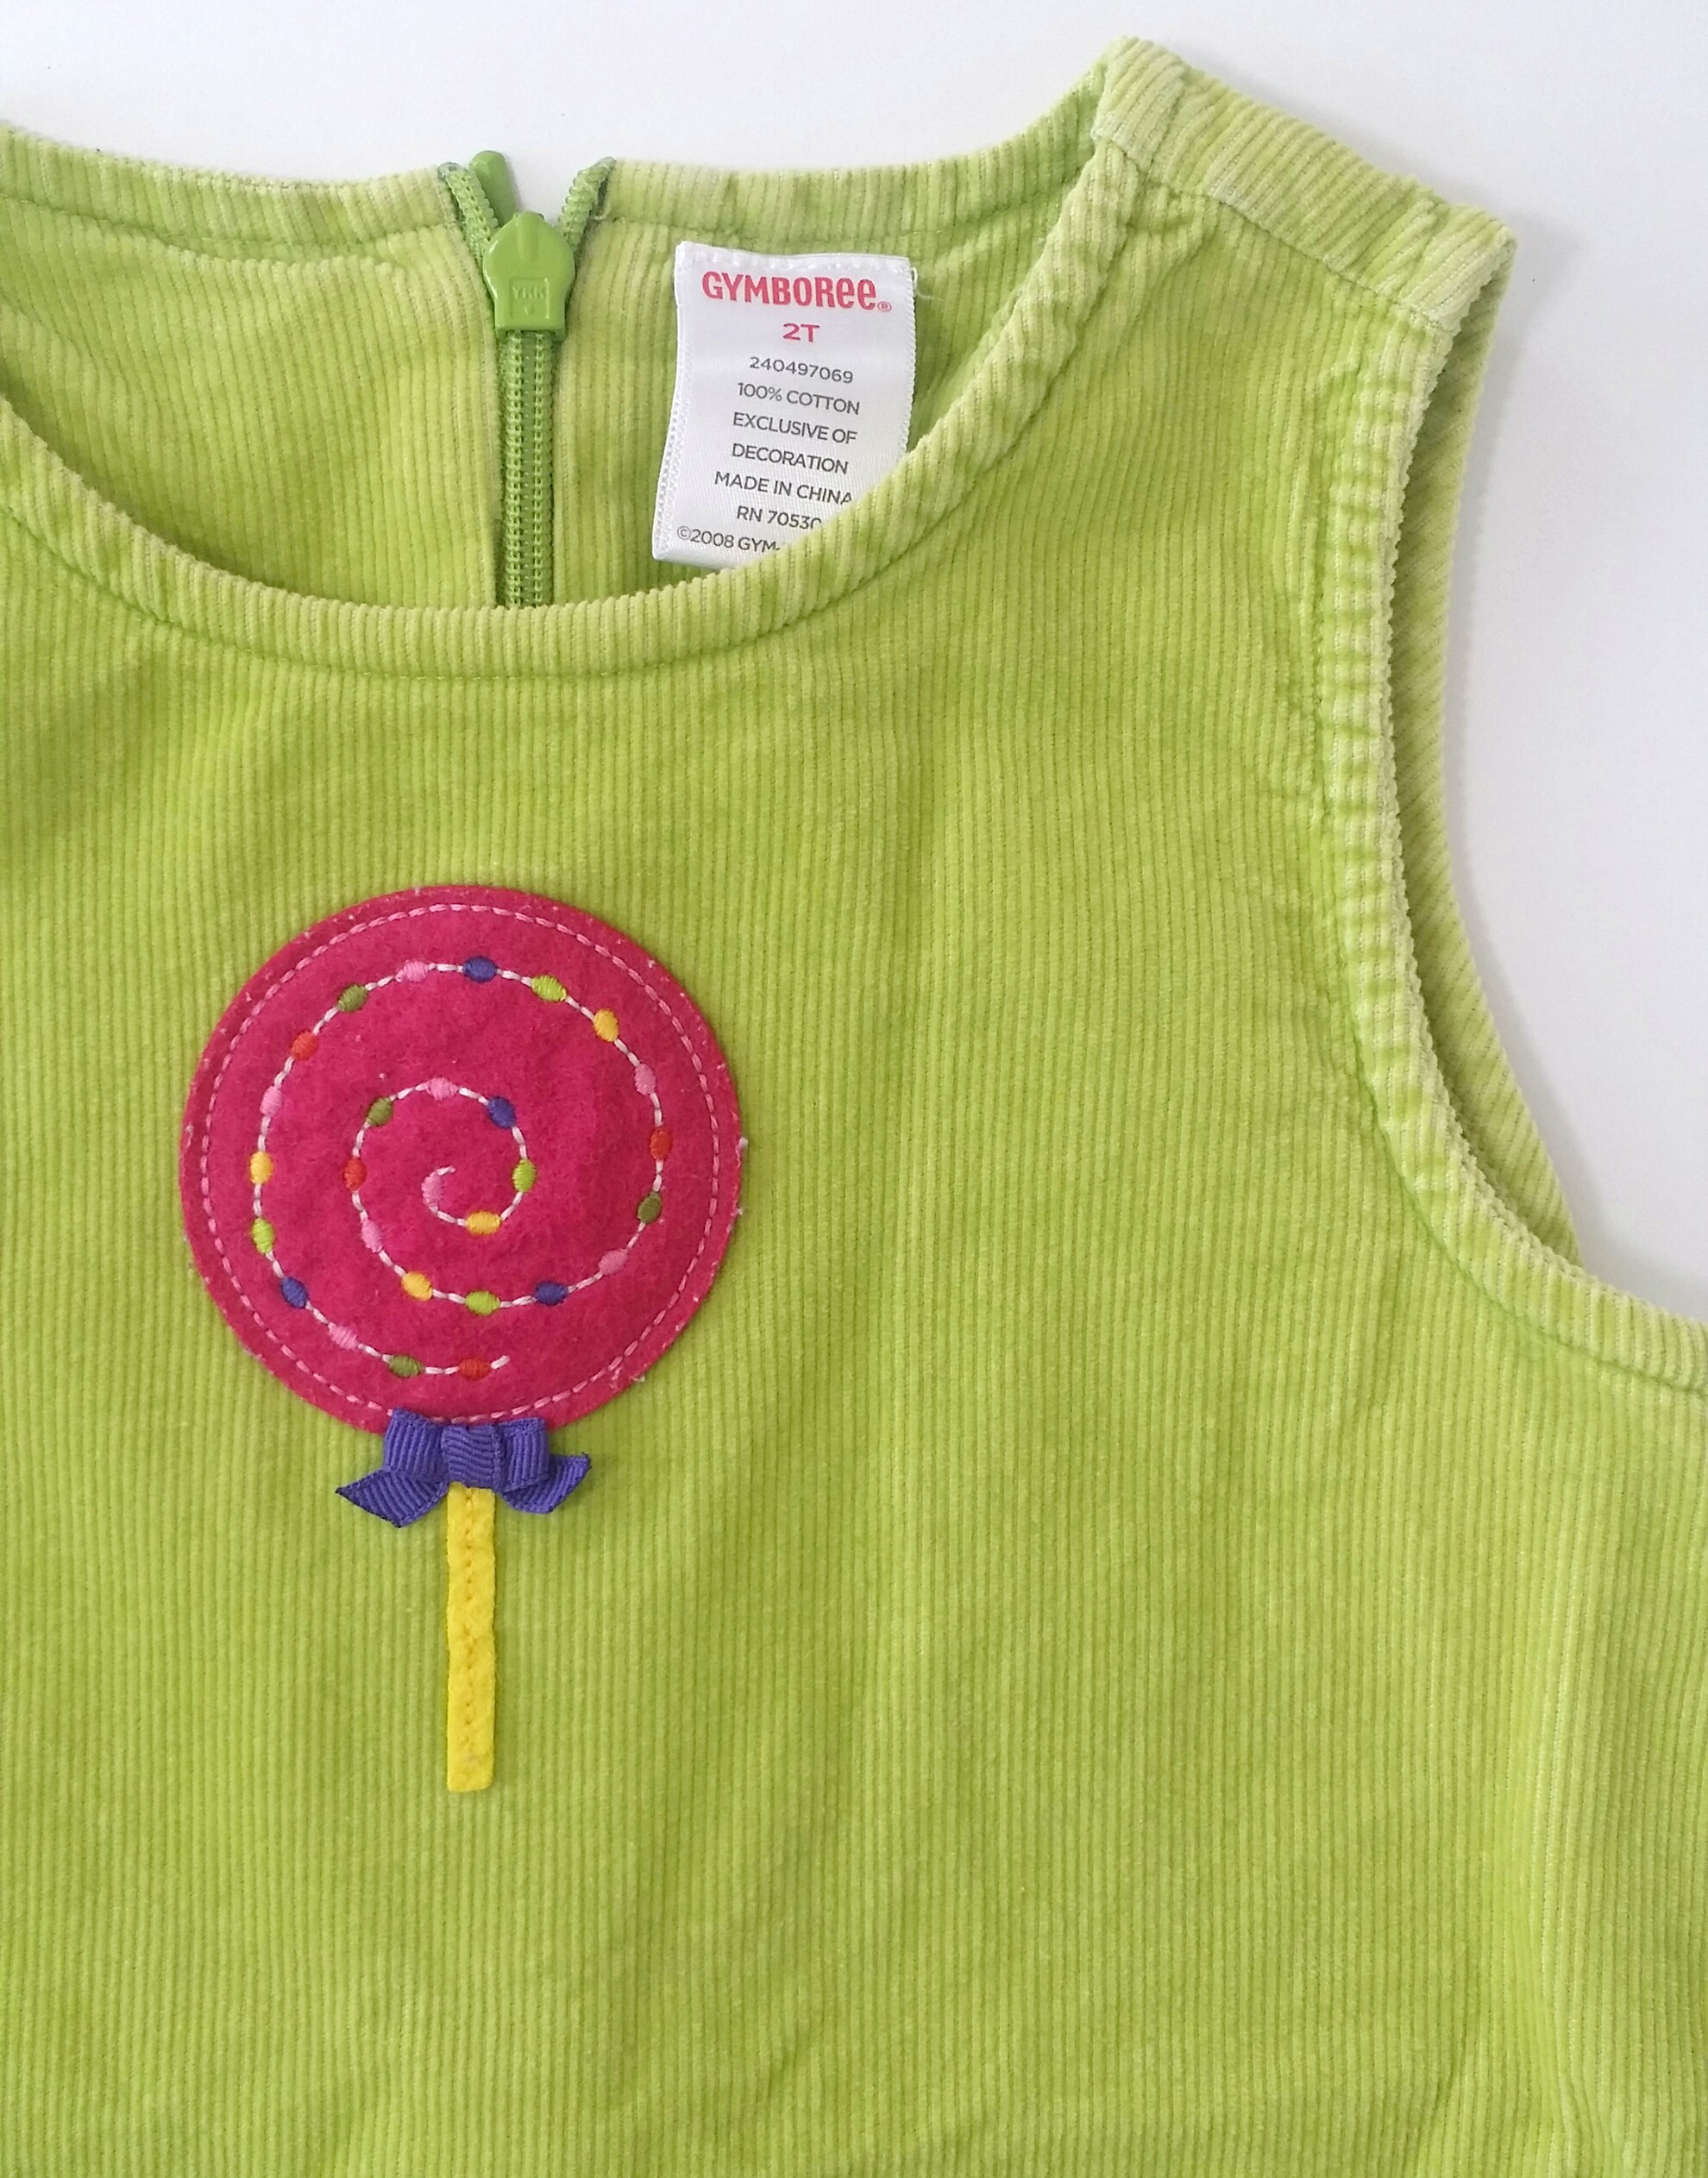 Gymboree-2-YEARS-Corduroy-Dress_2147220B.jpg